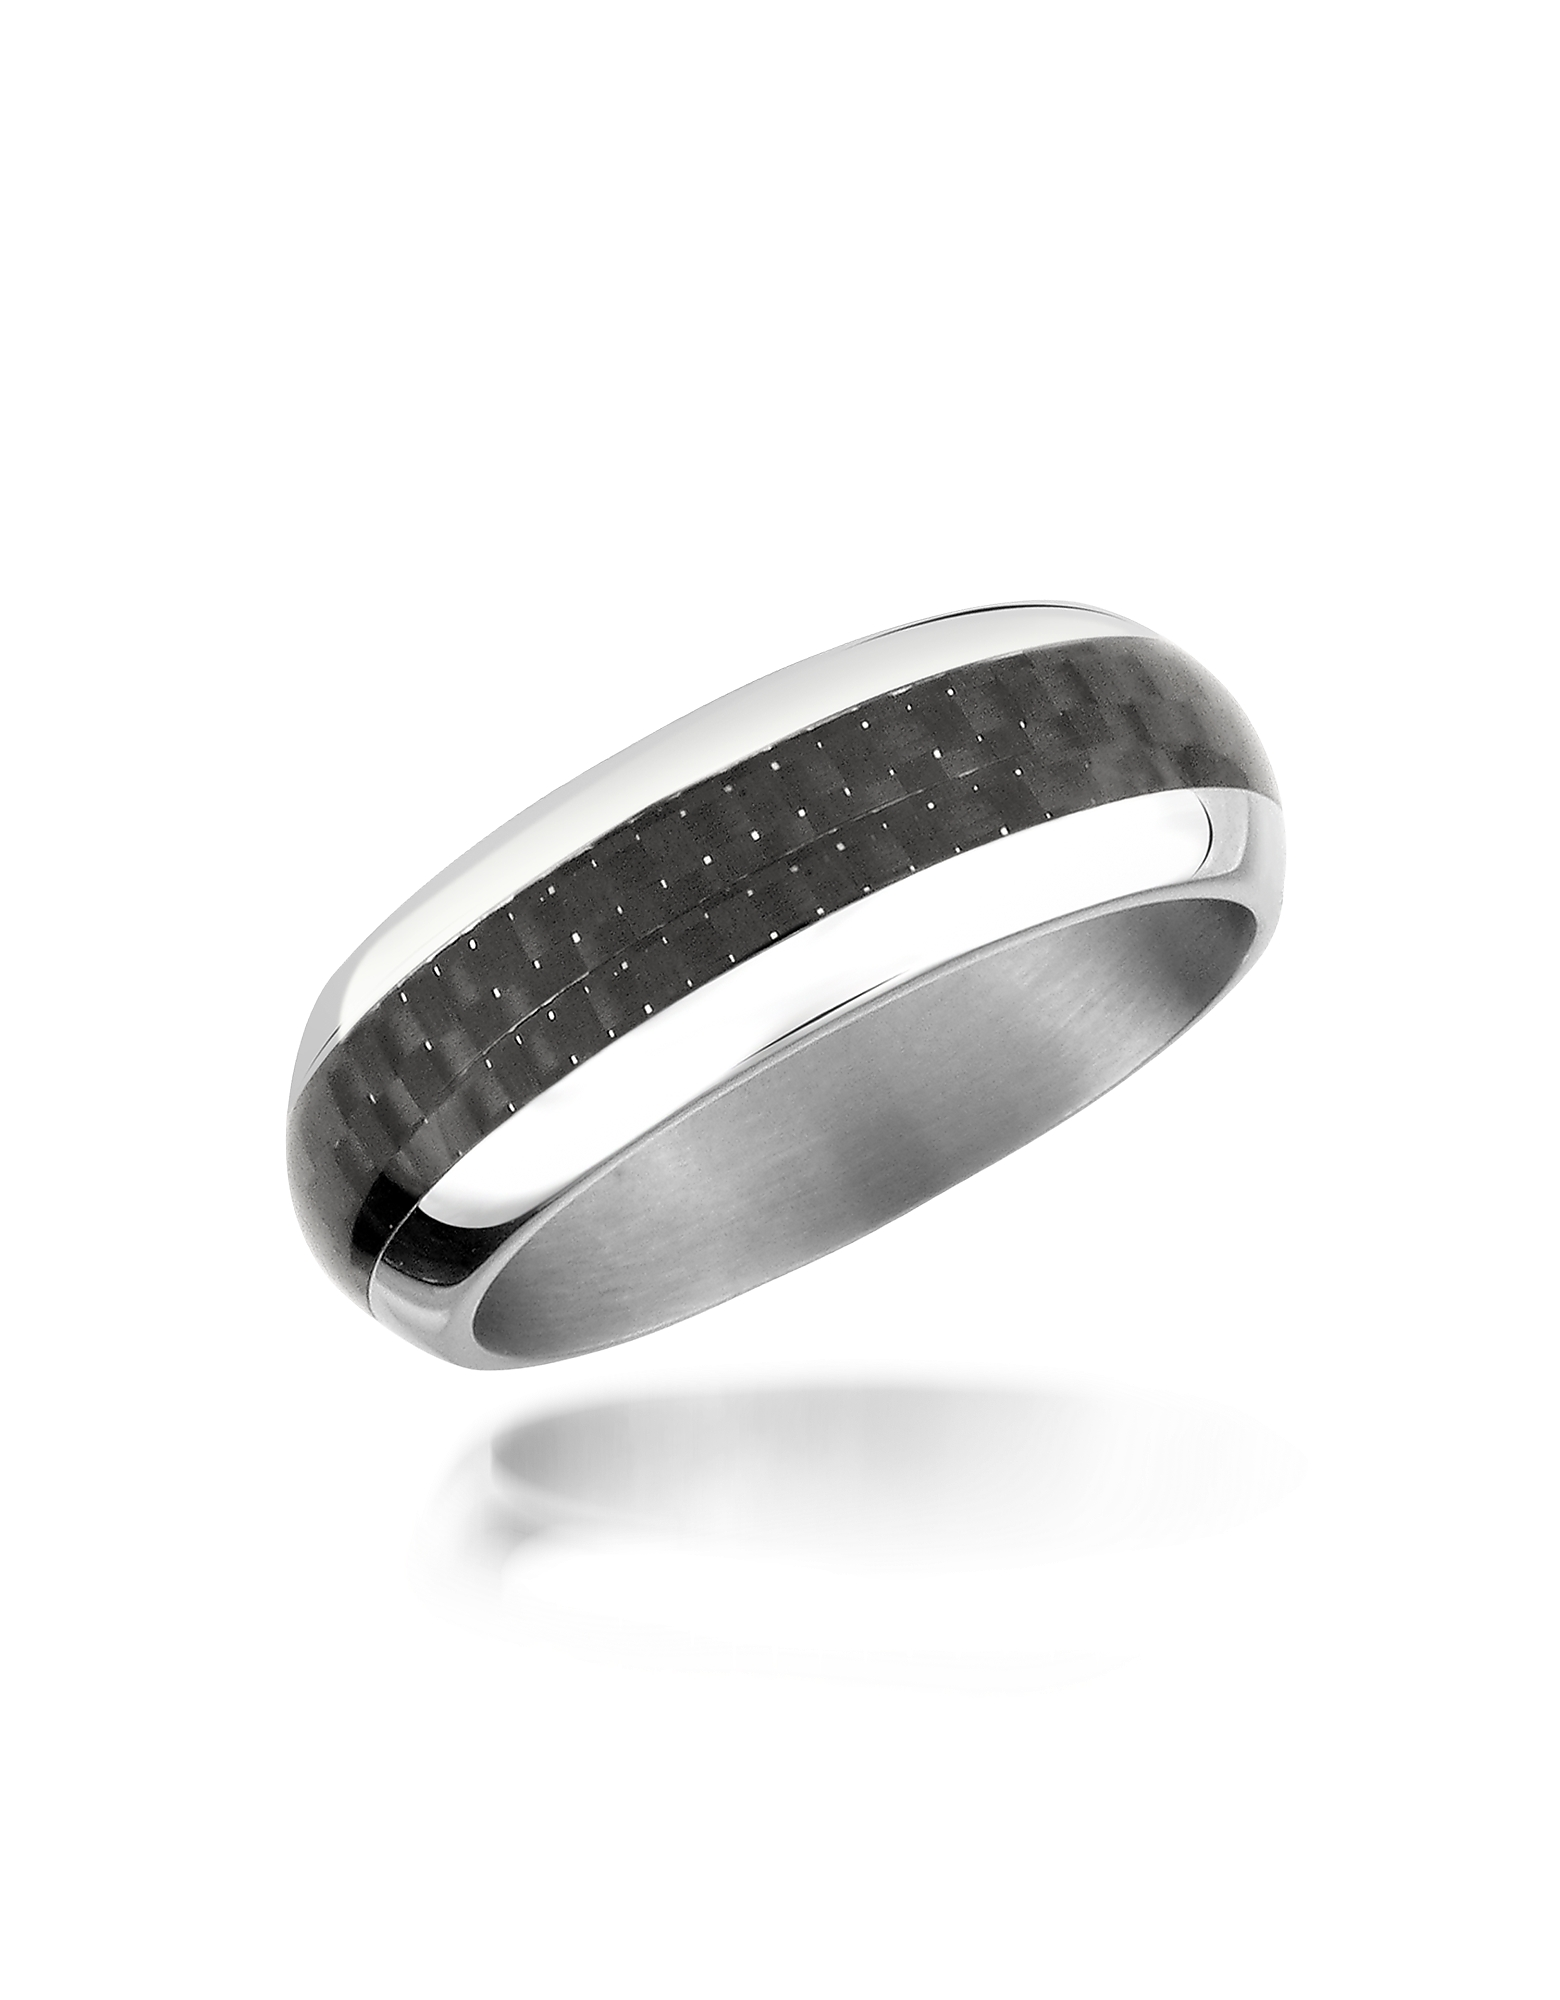 Zoppini Men's Rings, Zo Dark - Carbon Fiber & Stainless Steel Band Ring